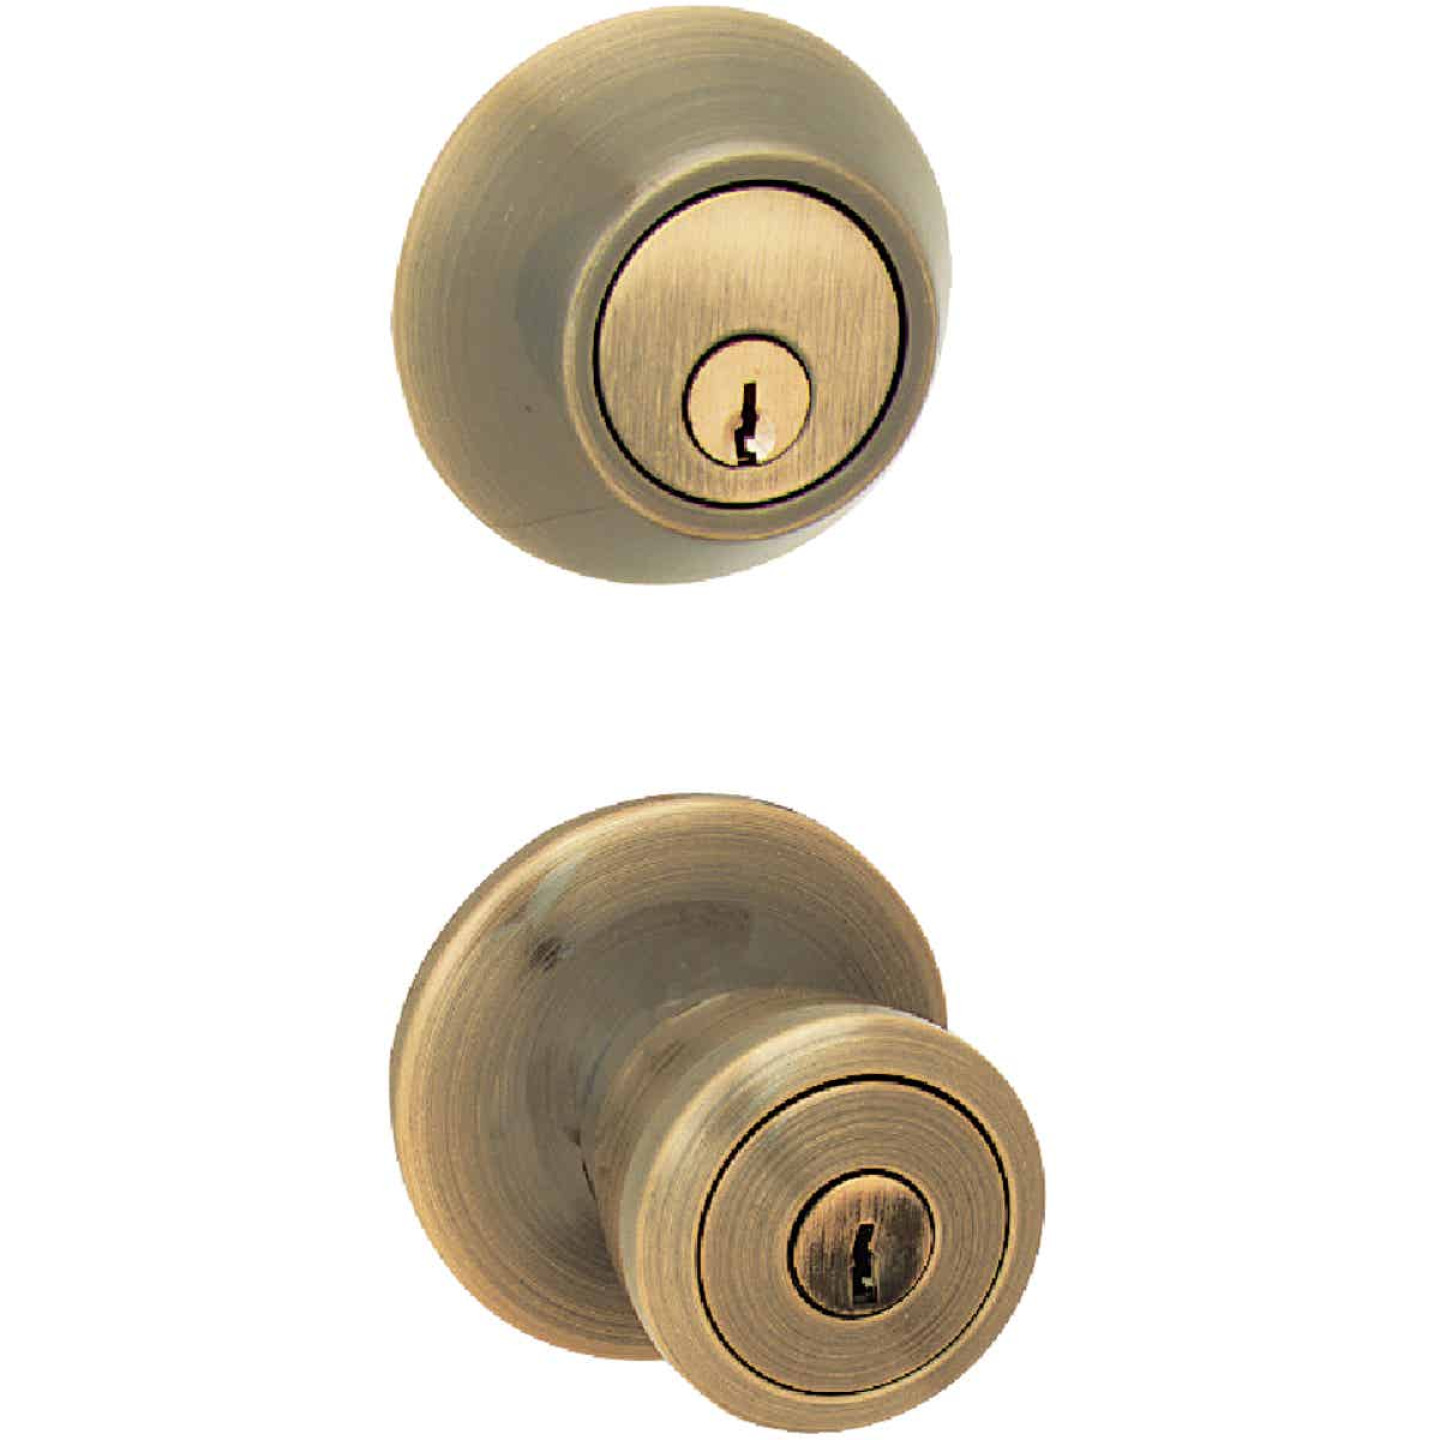 Steel Pro Antique Brass Deadbolt and Door Knob Combo Image 1